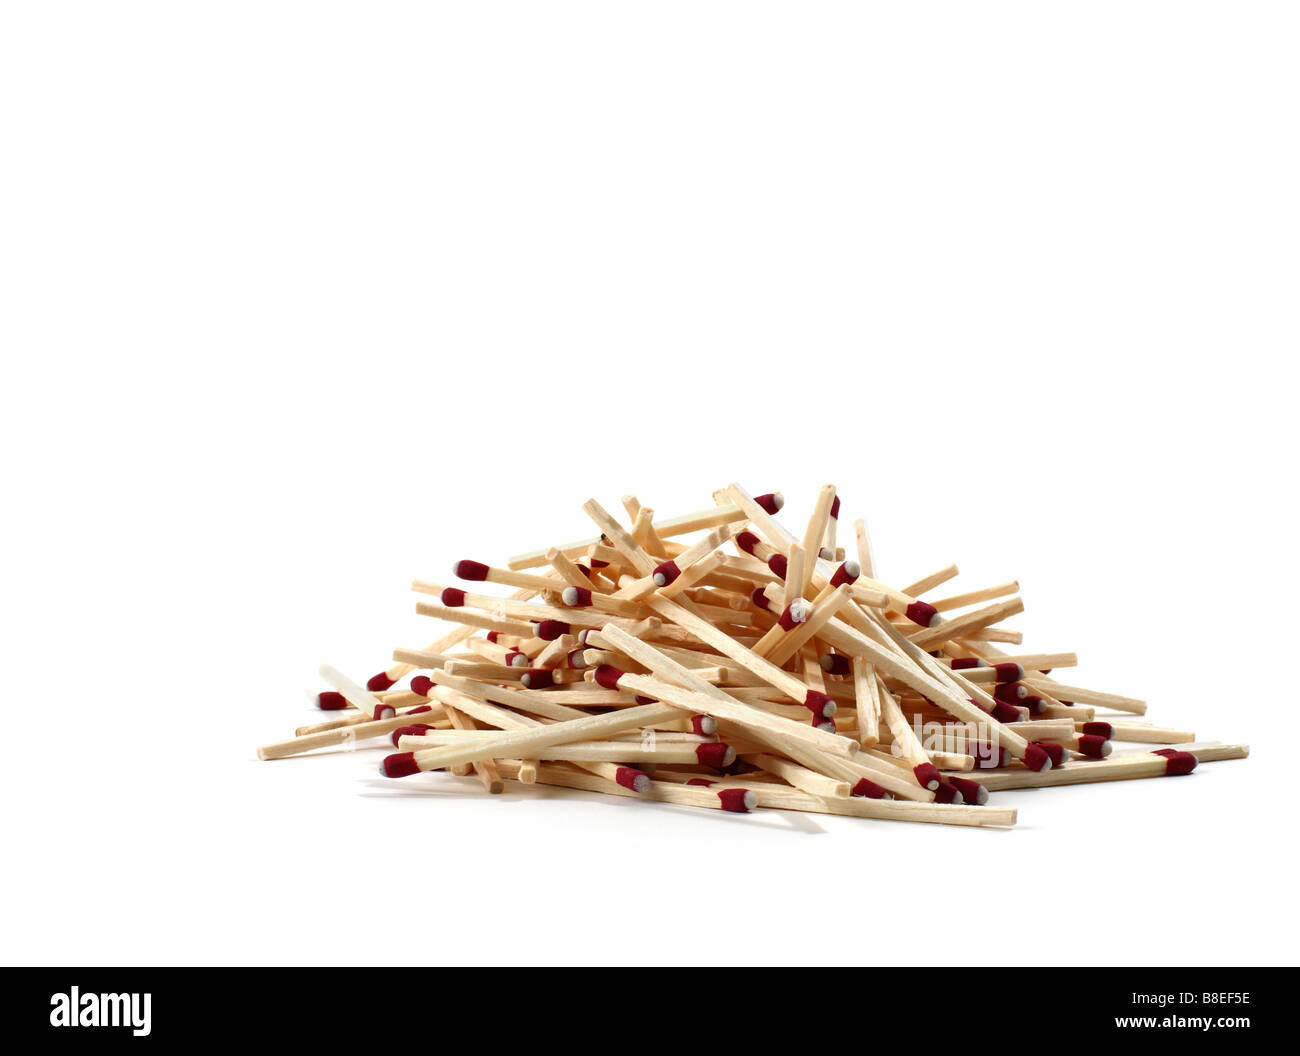 Pile of matchsticks - Stock Image